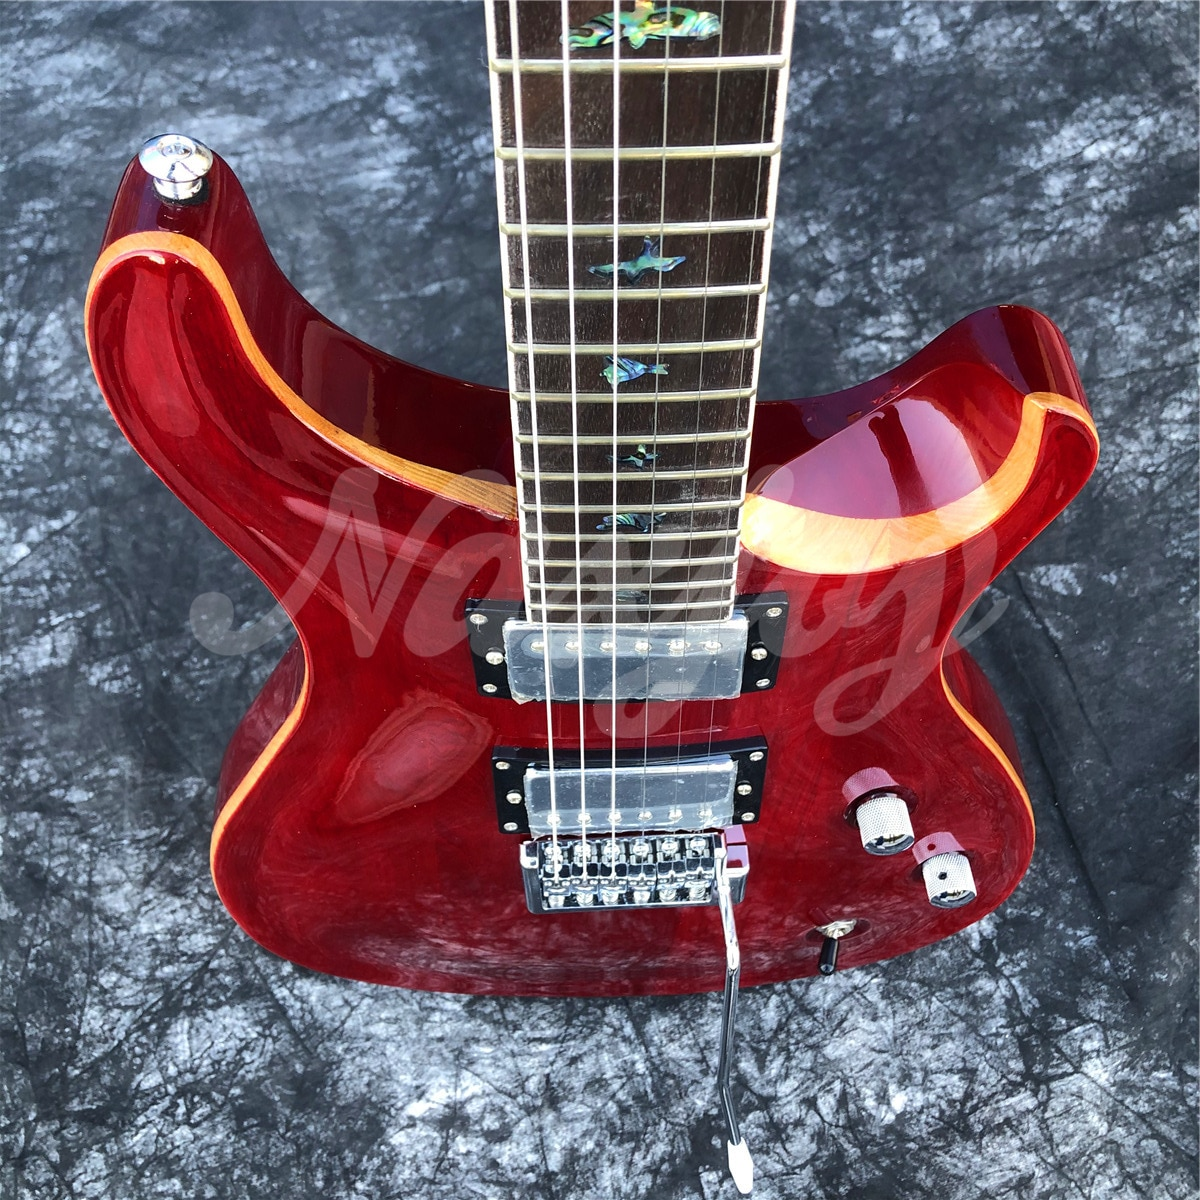 Promote Sales Glossy Red 6 String Electric Guitar,Solid Mahogany Body Rosewood Fingerboard Guitar,Real Photos enlarge